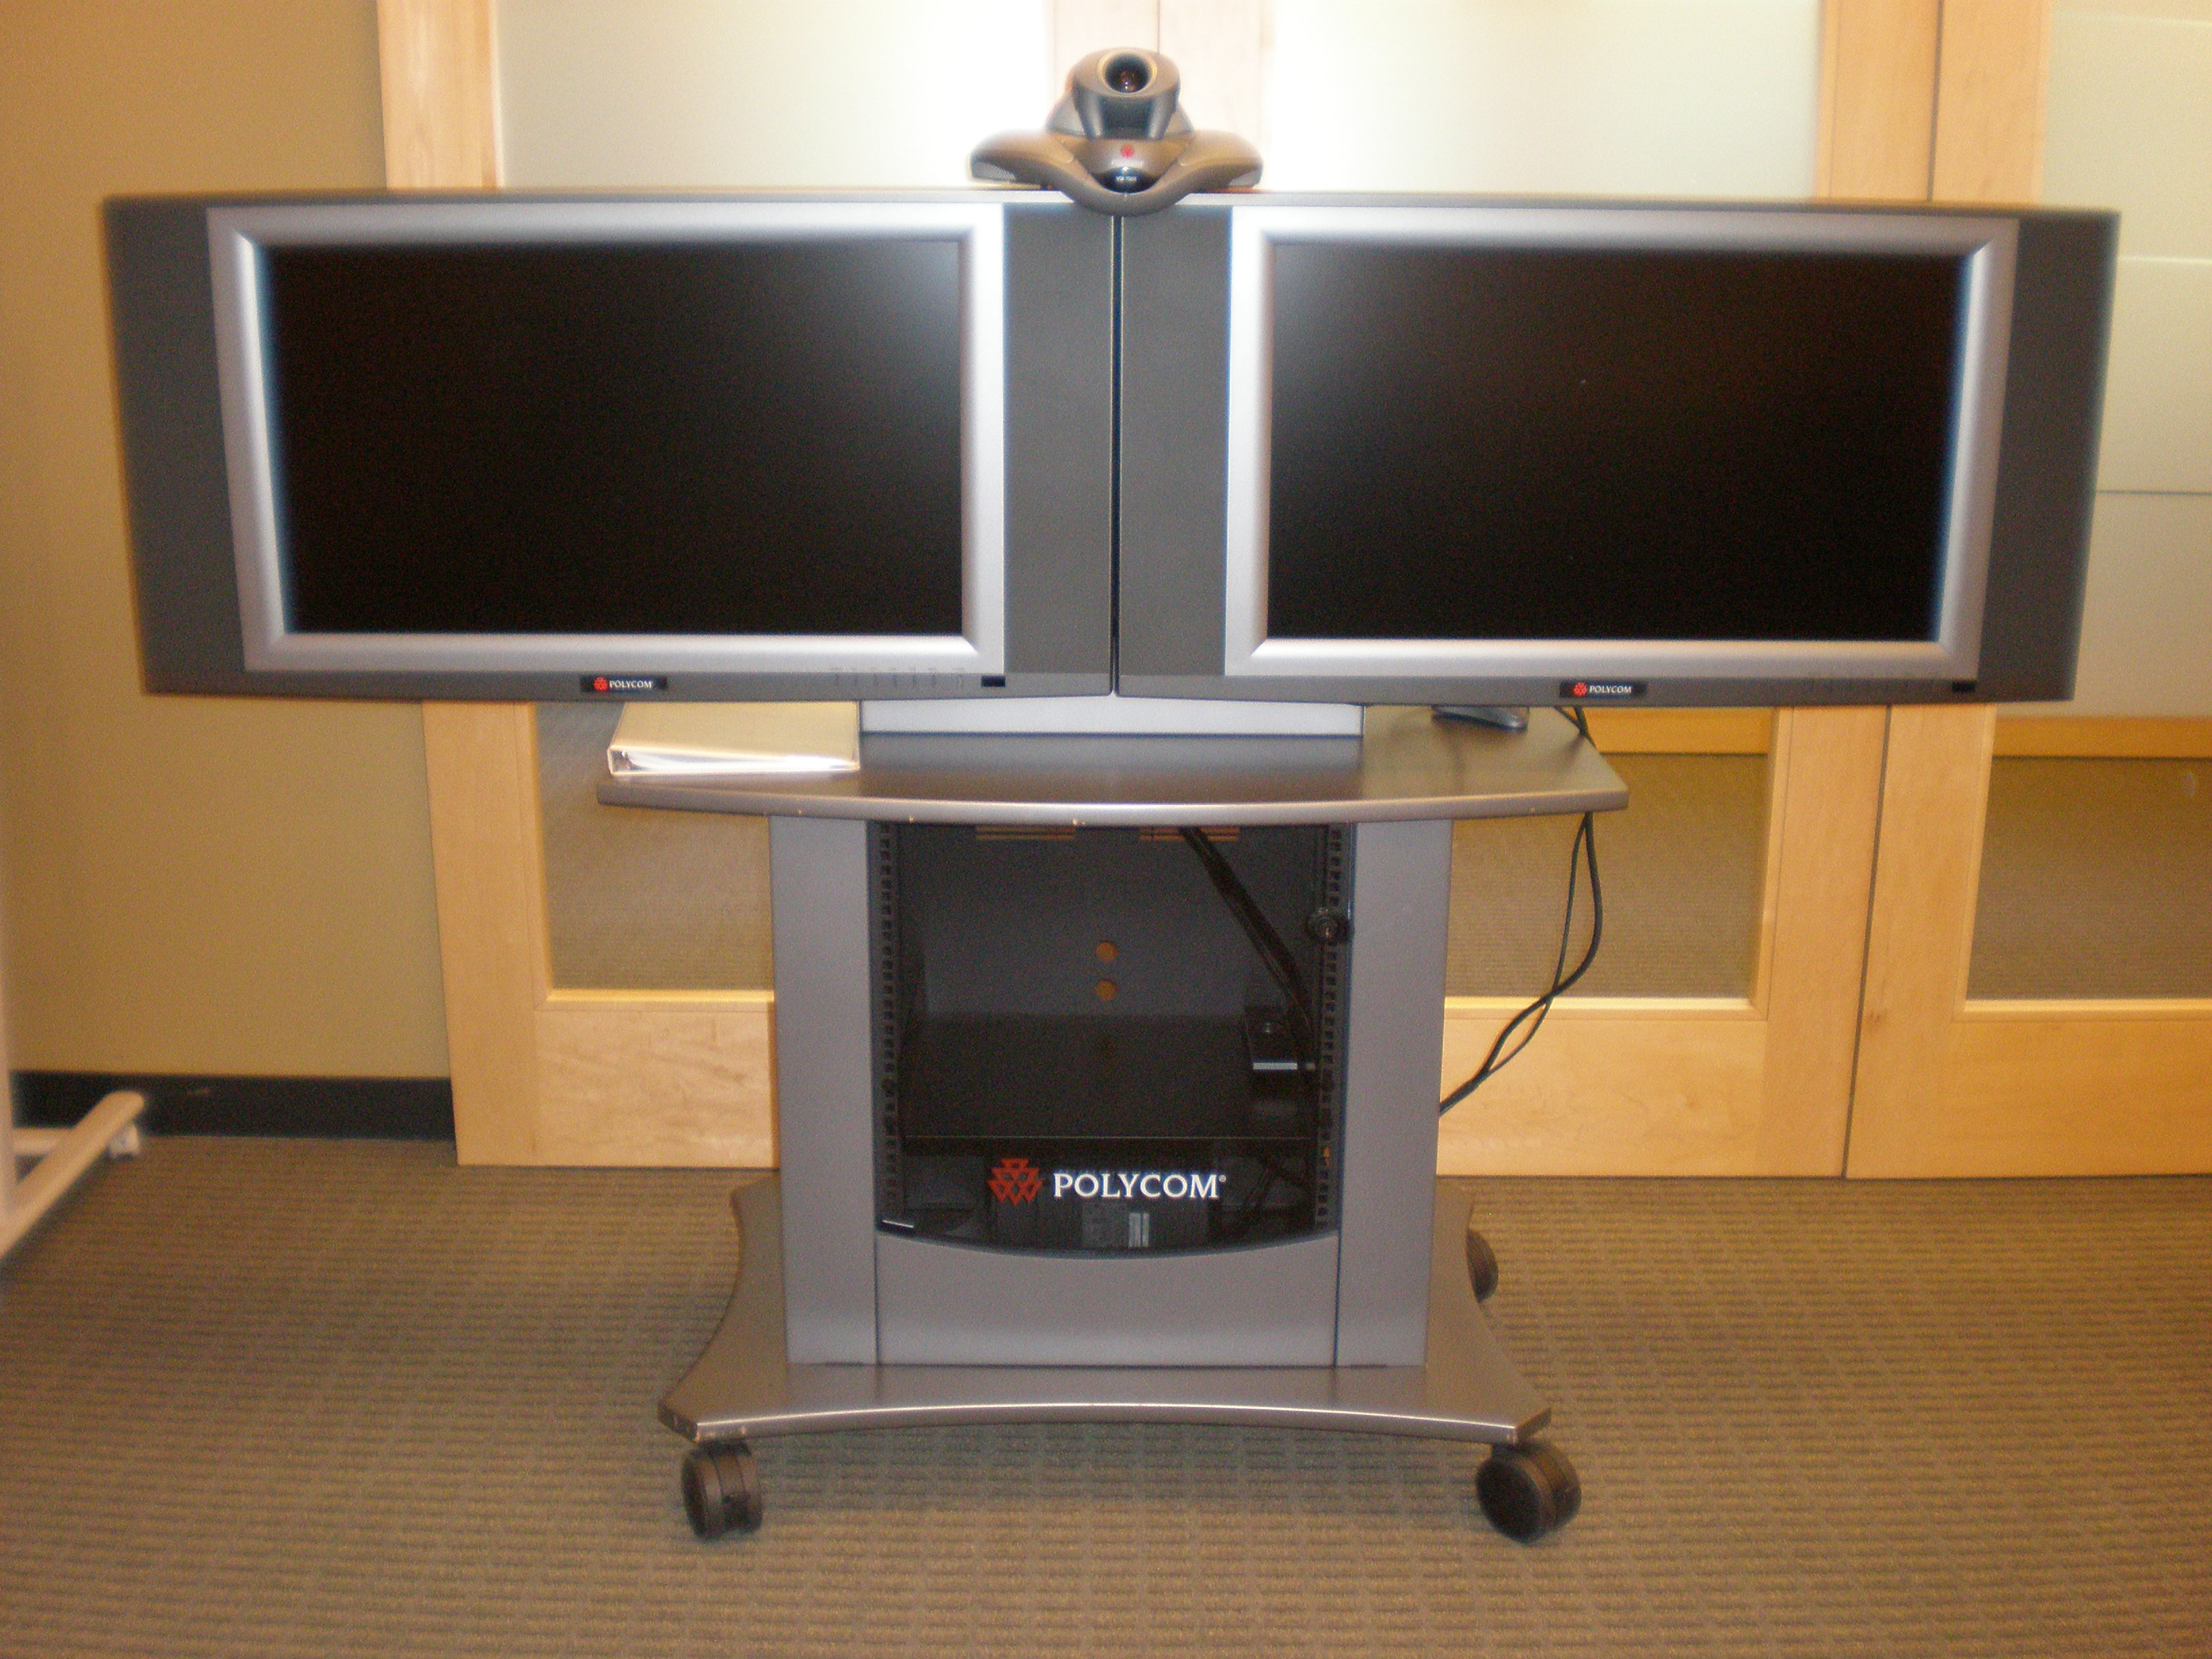 Dual display: An older Polycom VSX 7000 system and camera used for videoconferencing, with two displays for simultaneous broadcast from separate locations (2008).